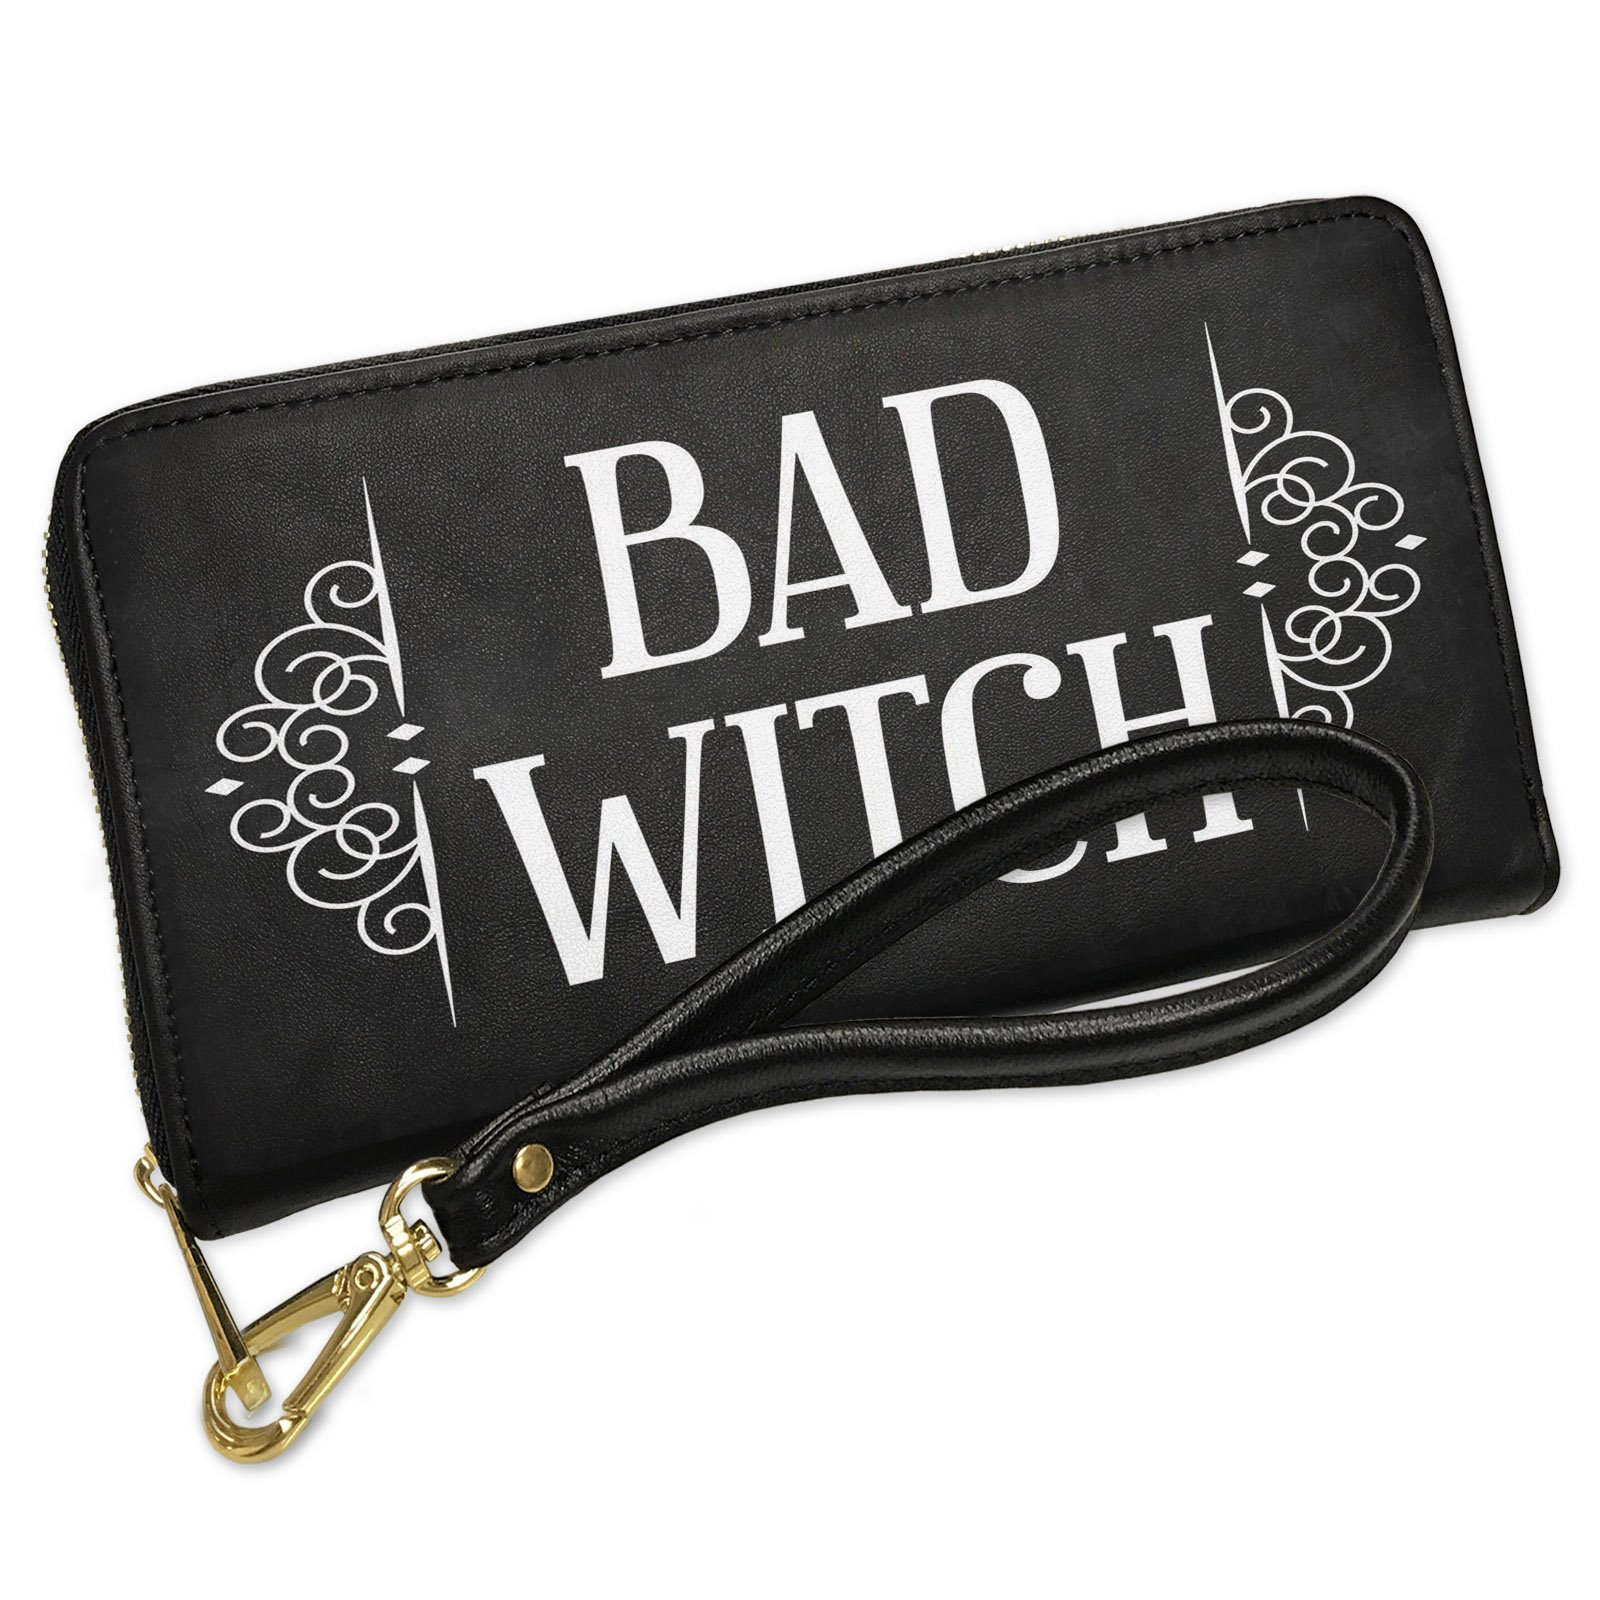 Wallet Clutch Bad Witch Halloween Haunting Flourish with Removable Wristlet Strap Neonblond